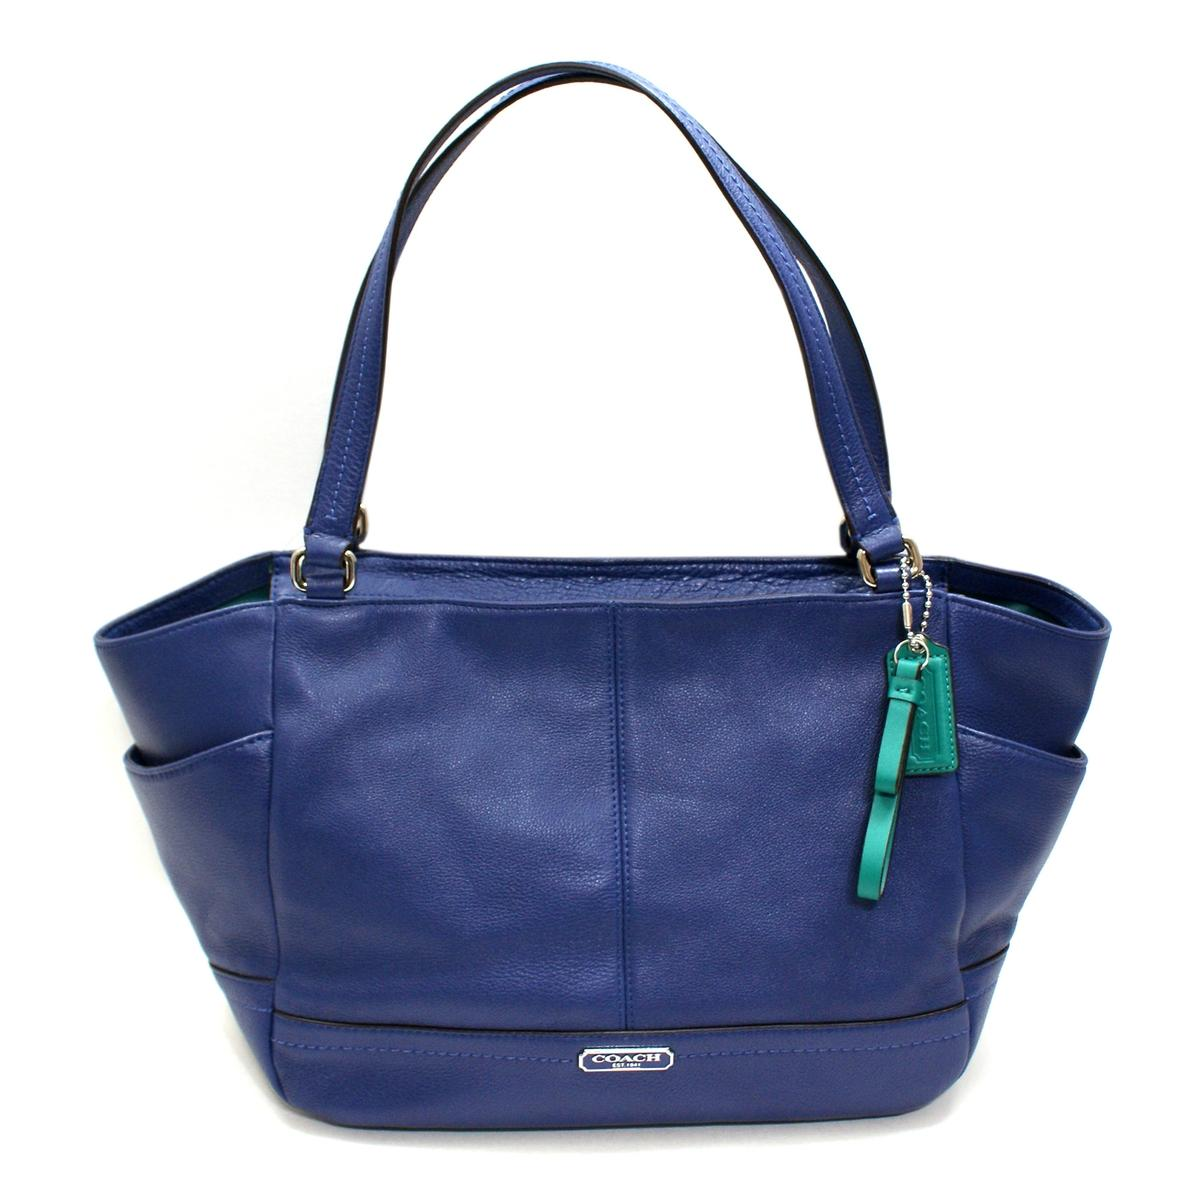 Coach Parker Leather Carrie Tote/ Shoulder Bag French Blue #23284 ...